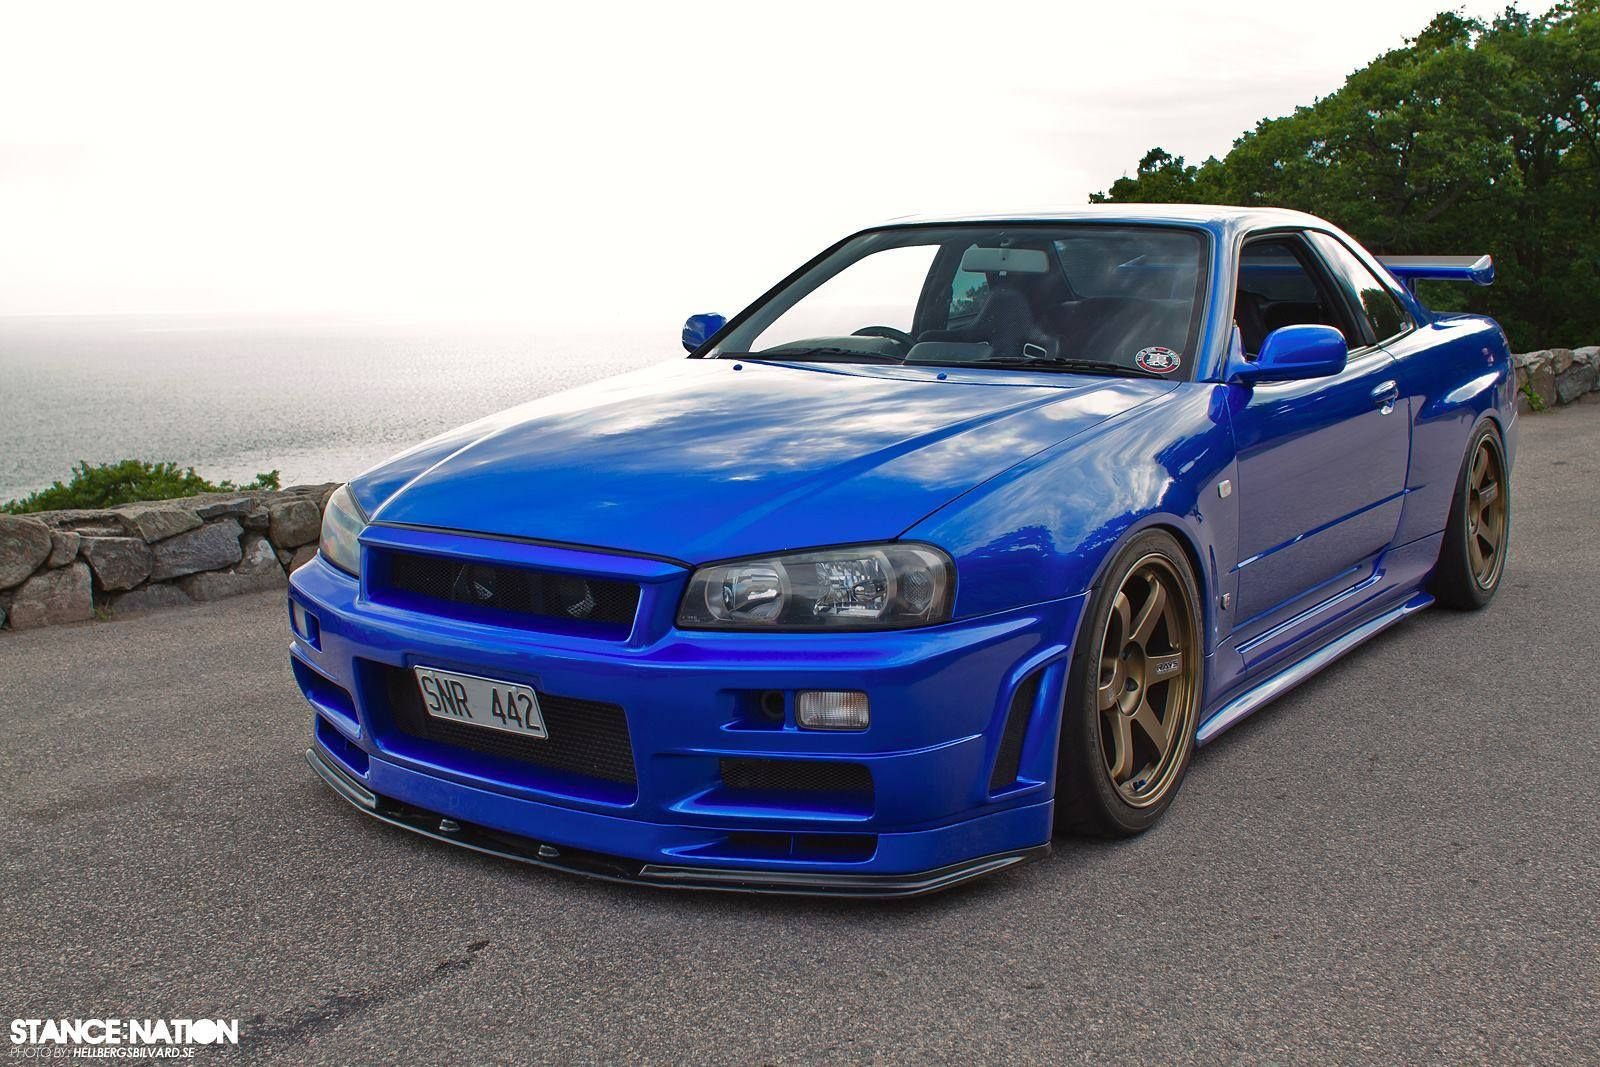 Beautiful bayside blue r34 nissan skyline gt r r34 while a lot of hype has been around the current generation nissan gt r this past month we found a bayside blue 2001 skyline gt r originally vanachro Choice Image